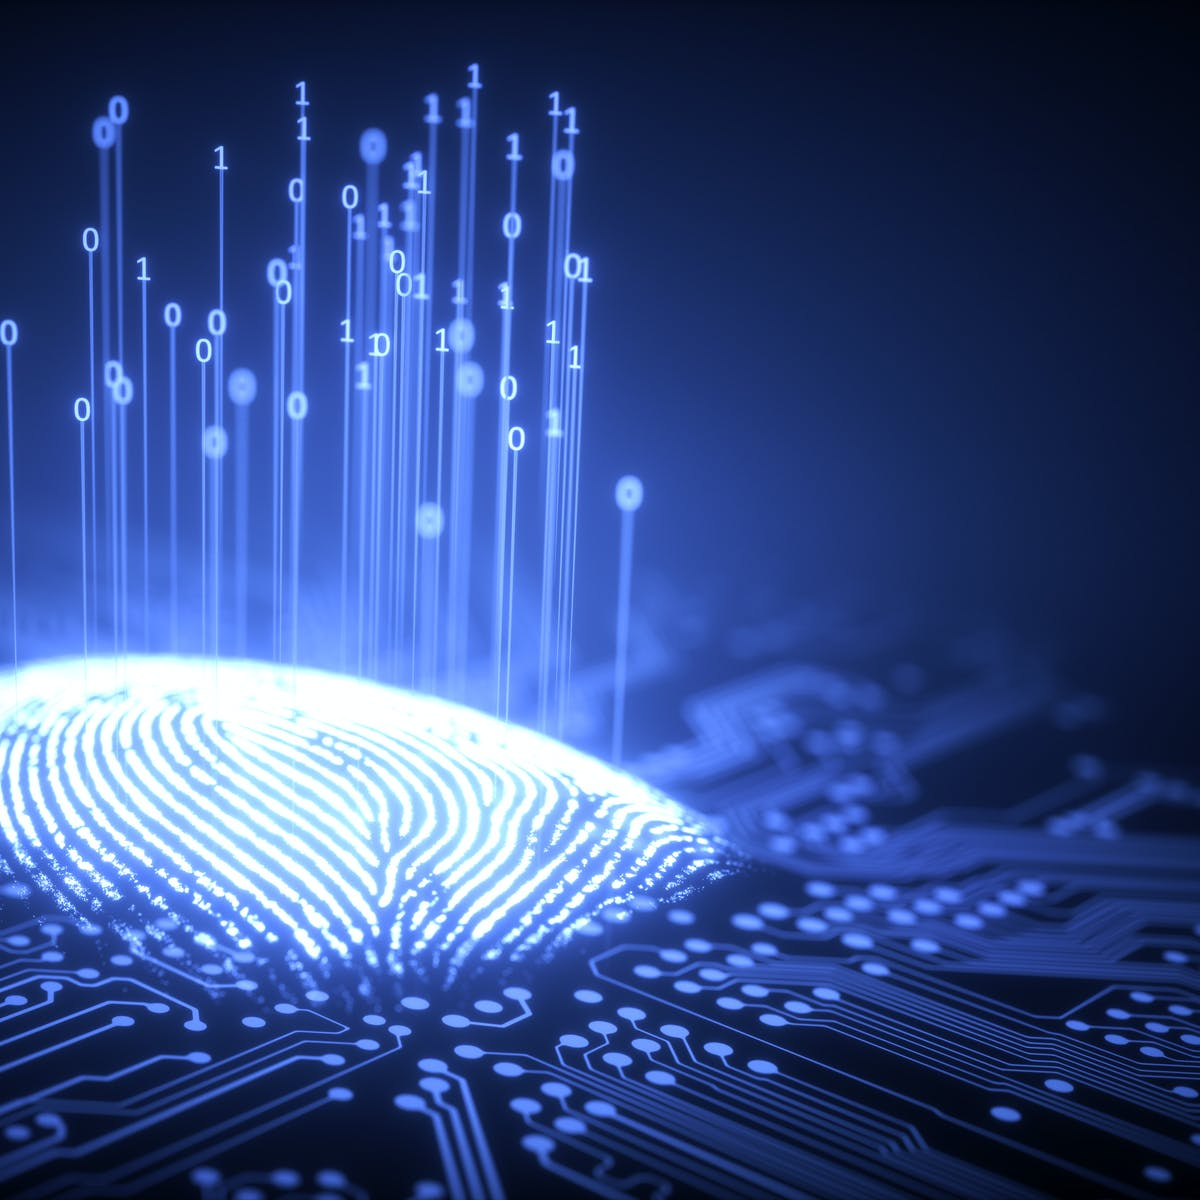 Fingerprint and face scanners aren't as secure as we think